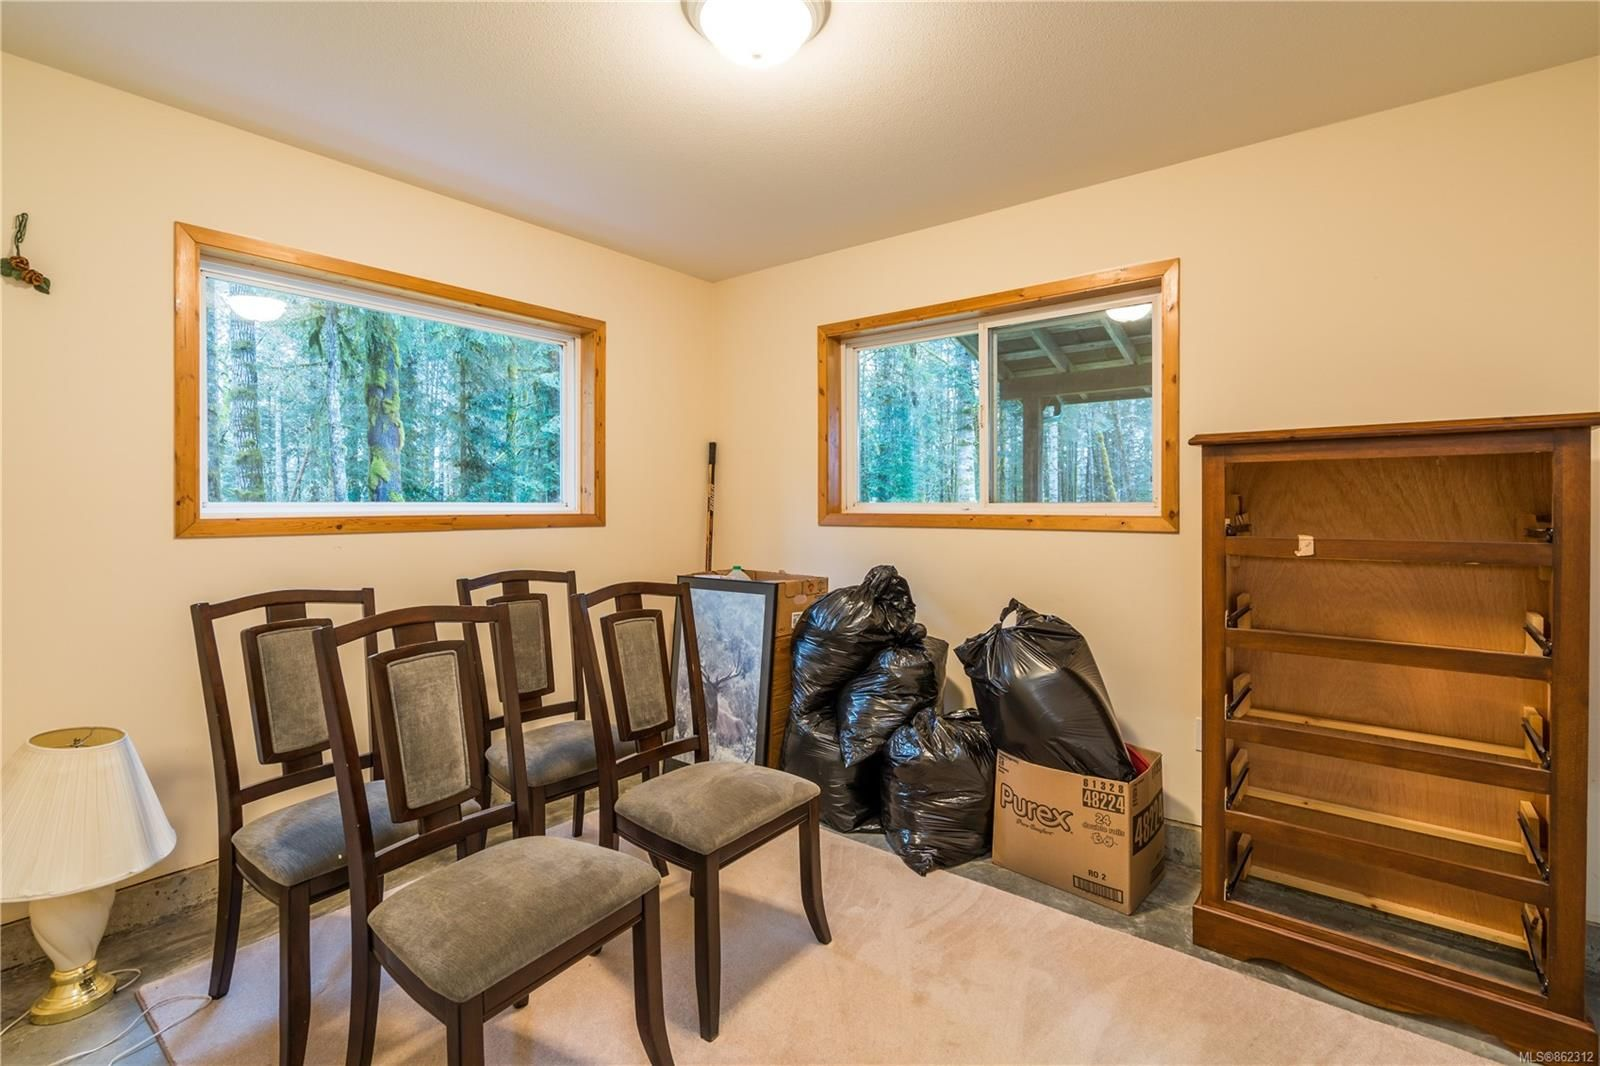 Photo 43: Photos: 7380 Plymouth Rd in : PA Alberni Valley House for sale (Port Alberni)  : MLS®# 862312